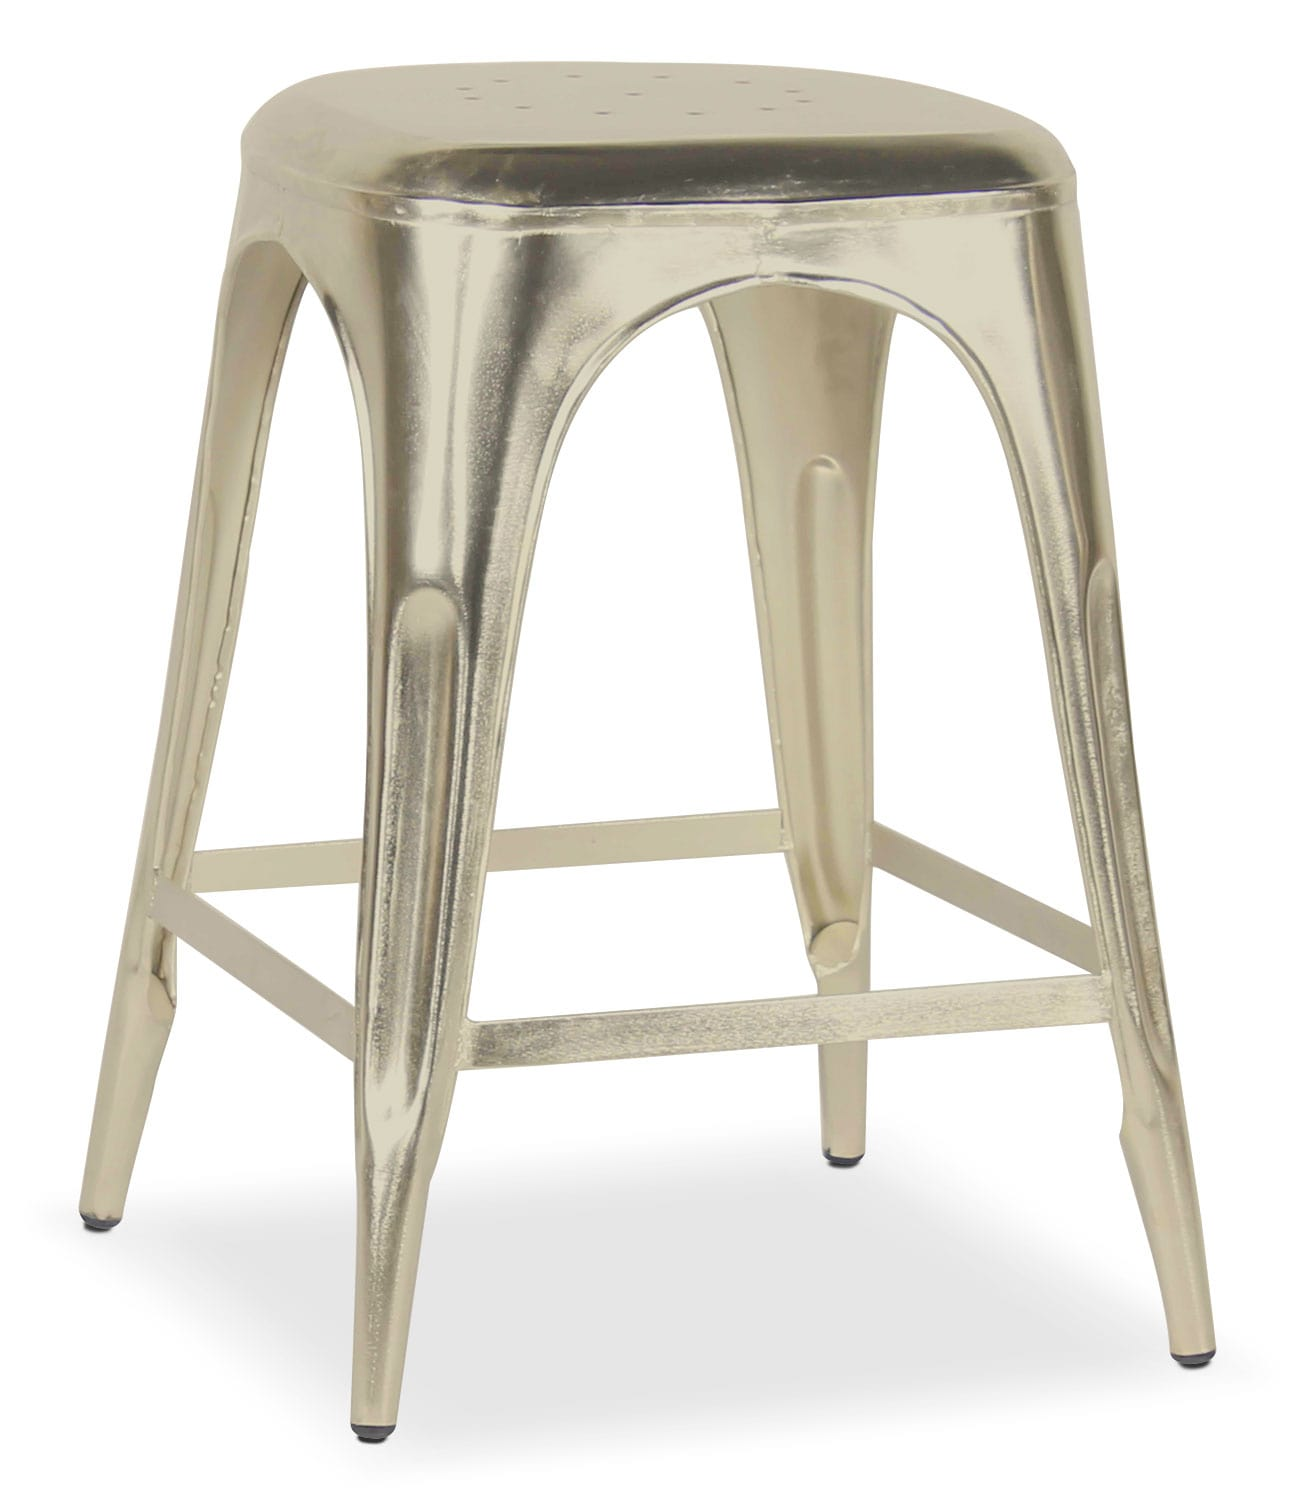 Holden Backless Counter-Height Stool - Nickel